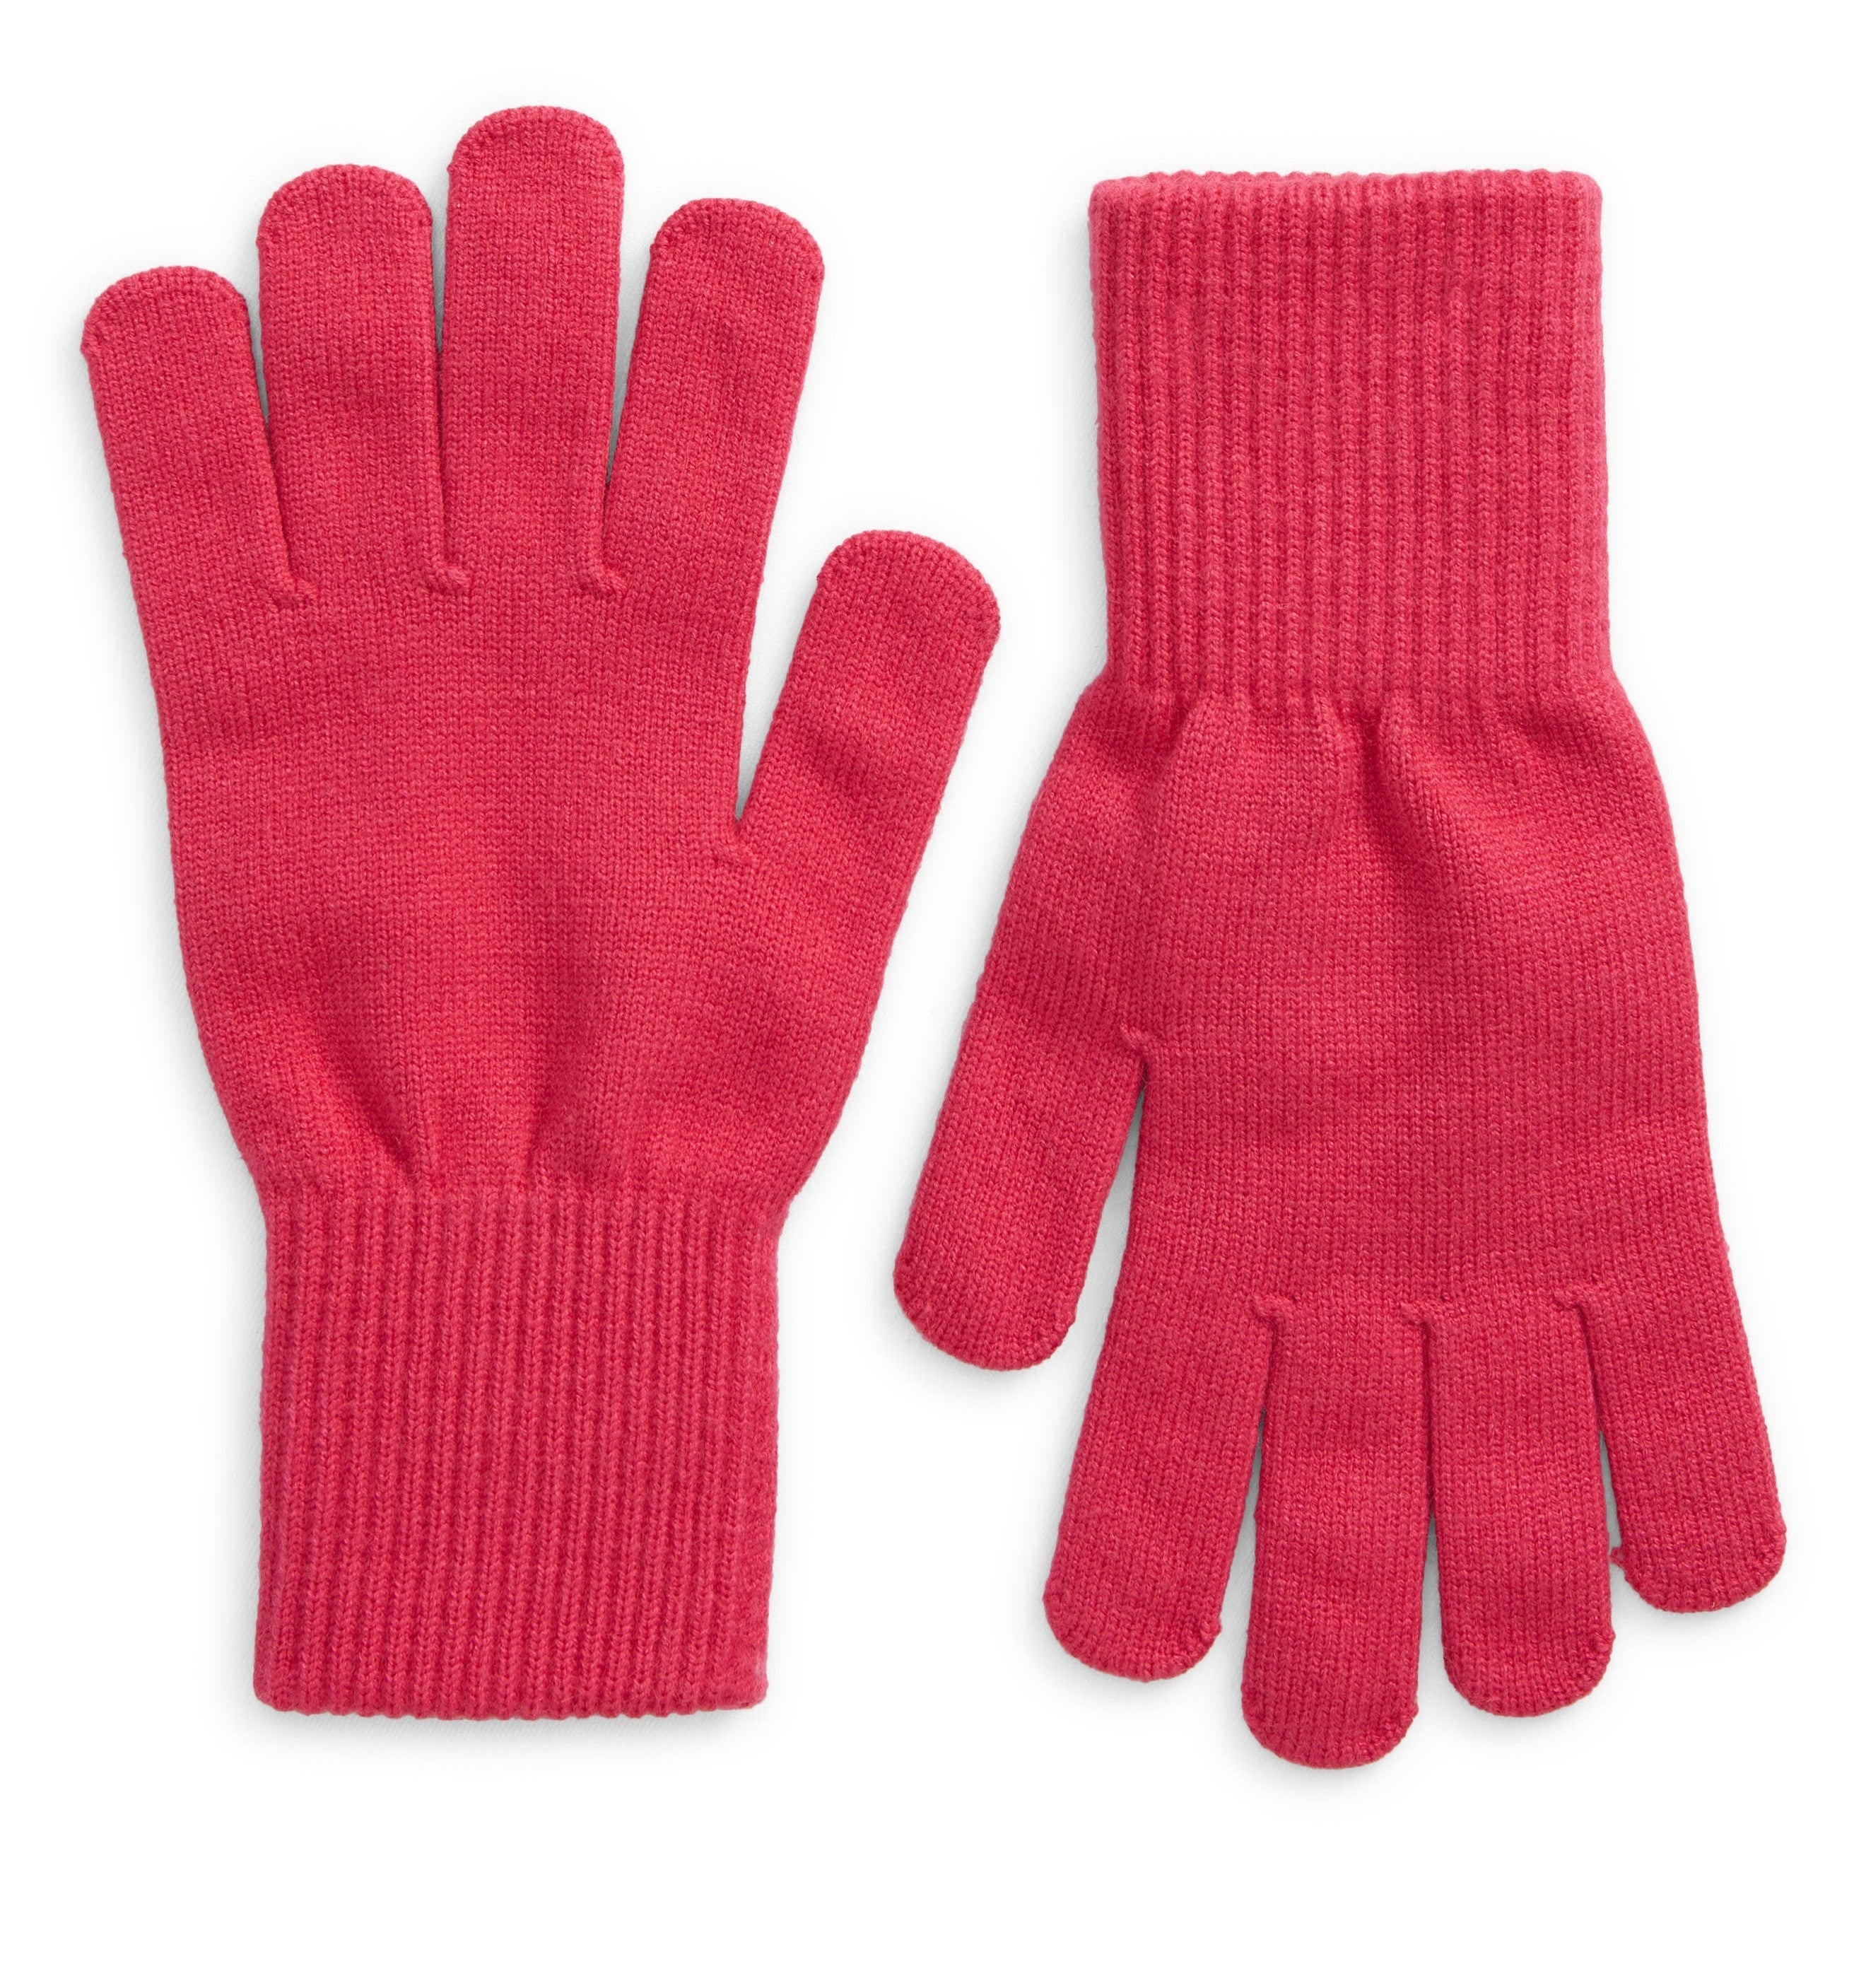 red knit gloves lying on a white background